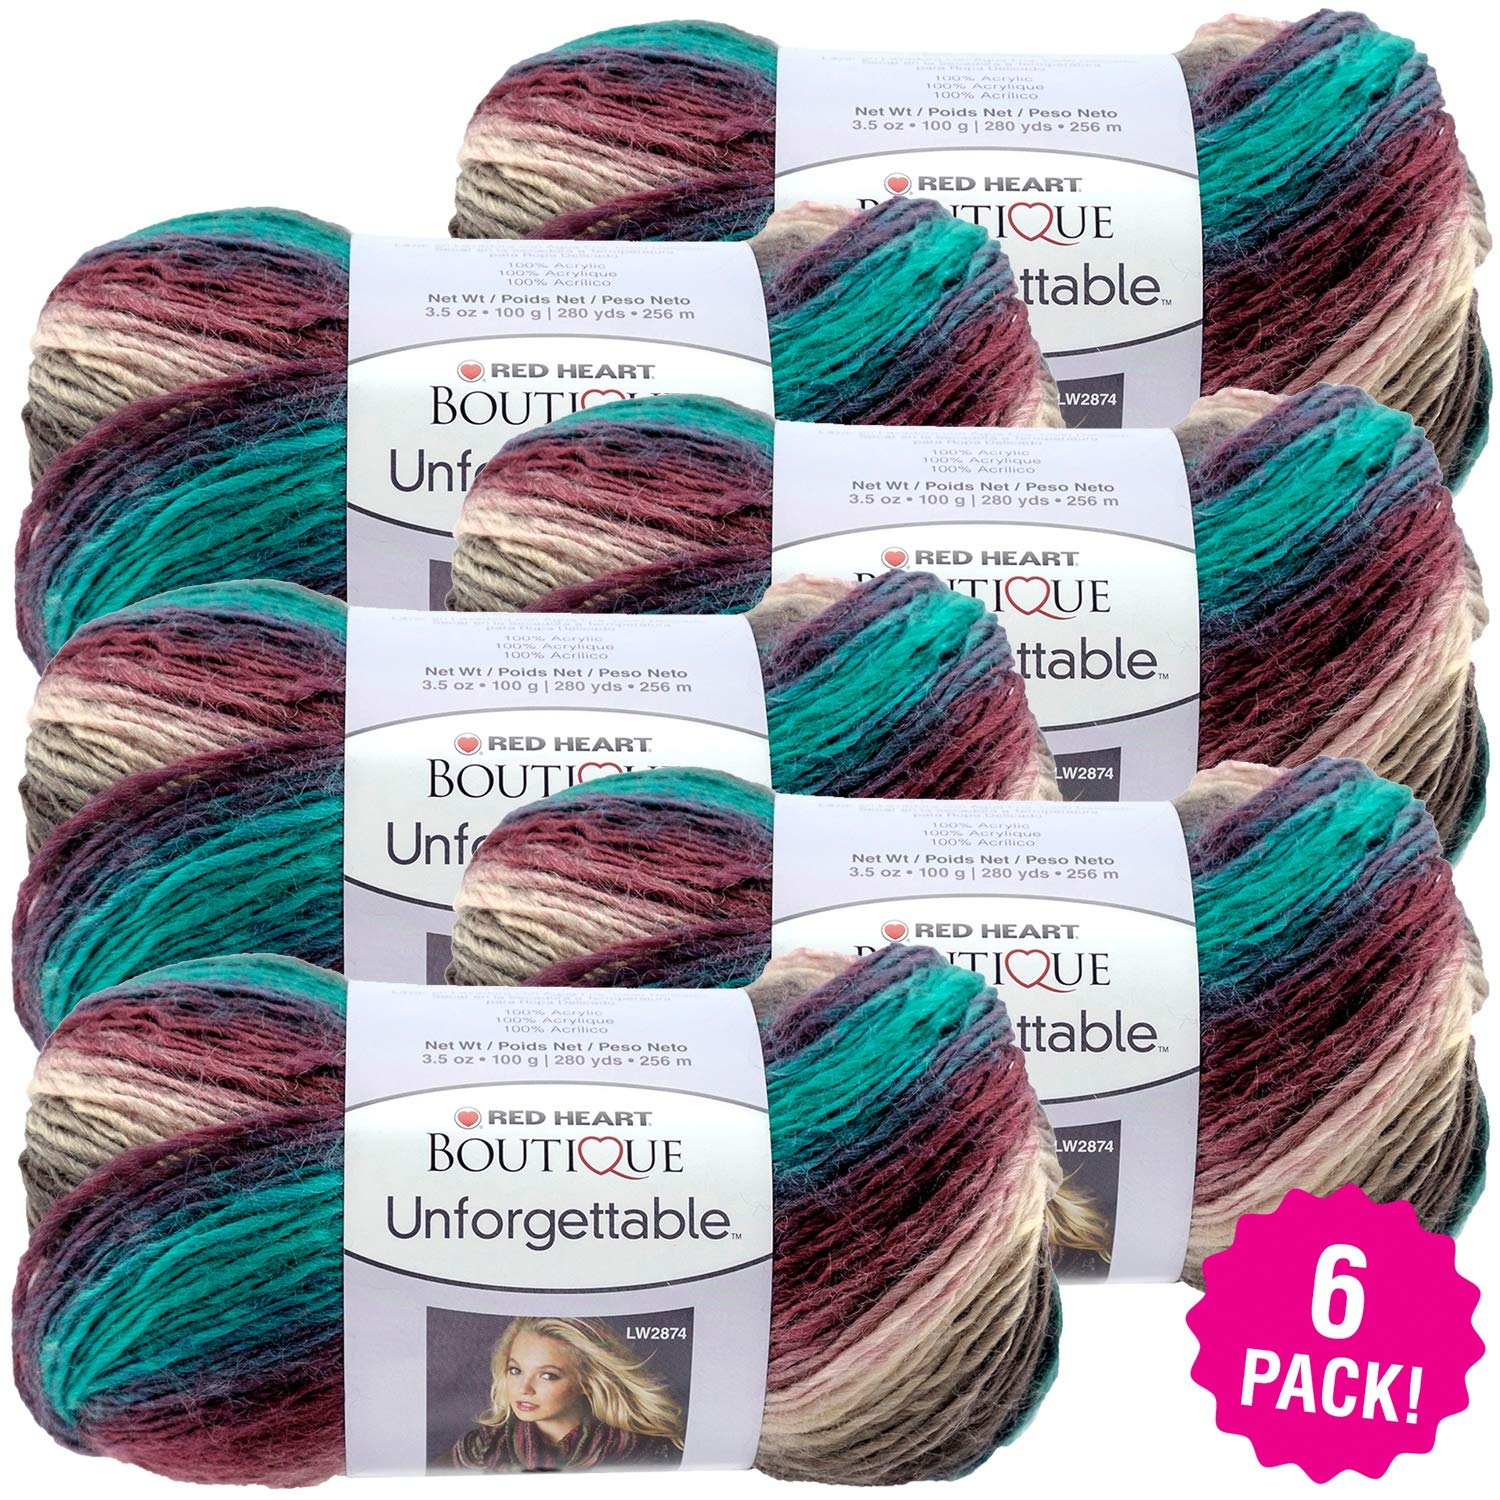 Red Heart 99471 Boutique Unforgettable Yarn 6/Pk-Tealberry, Pack